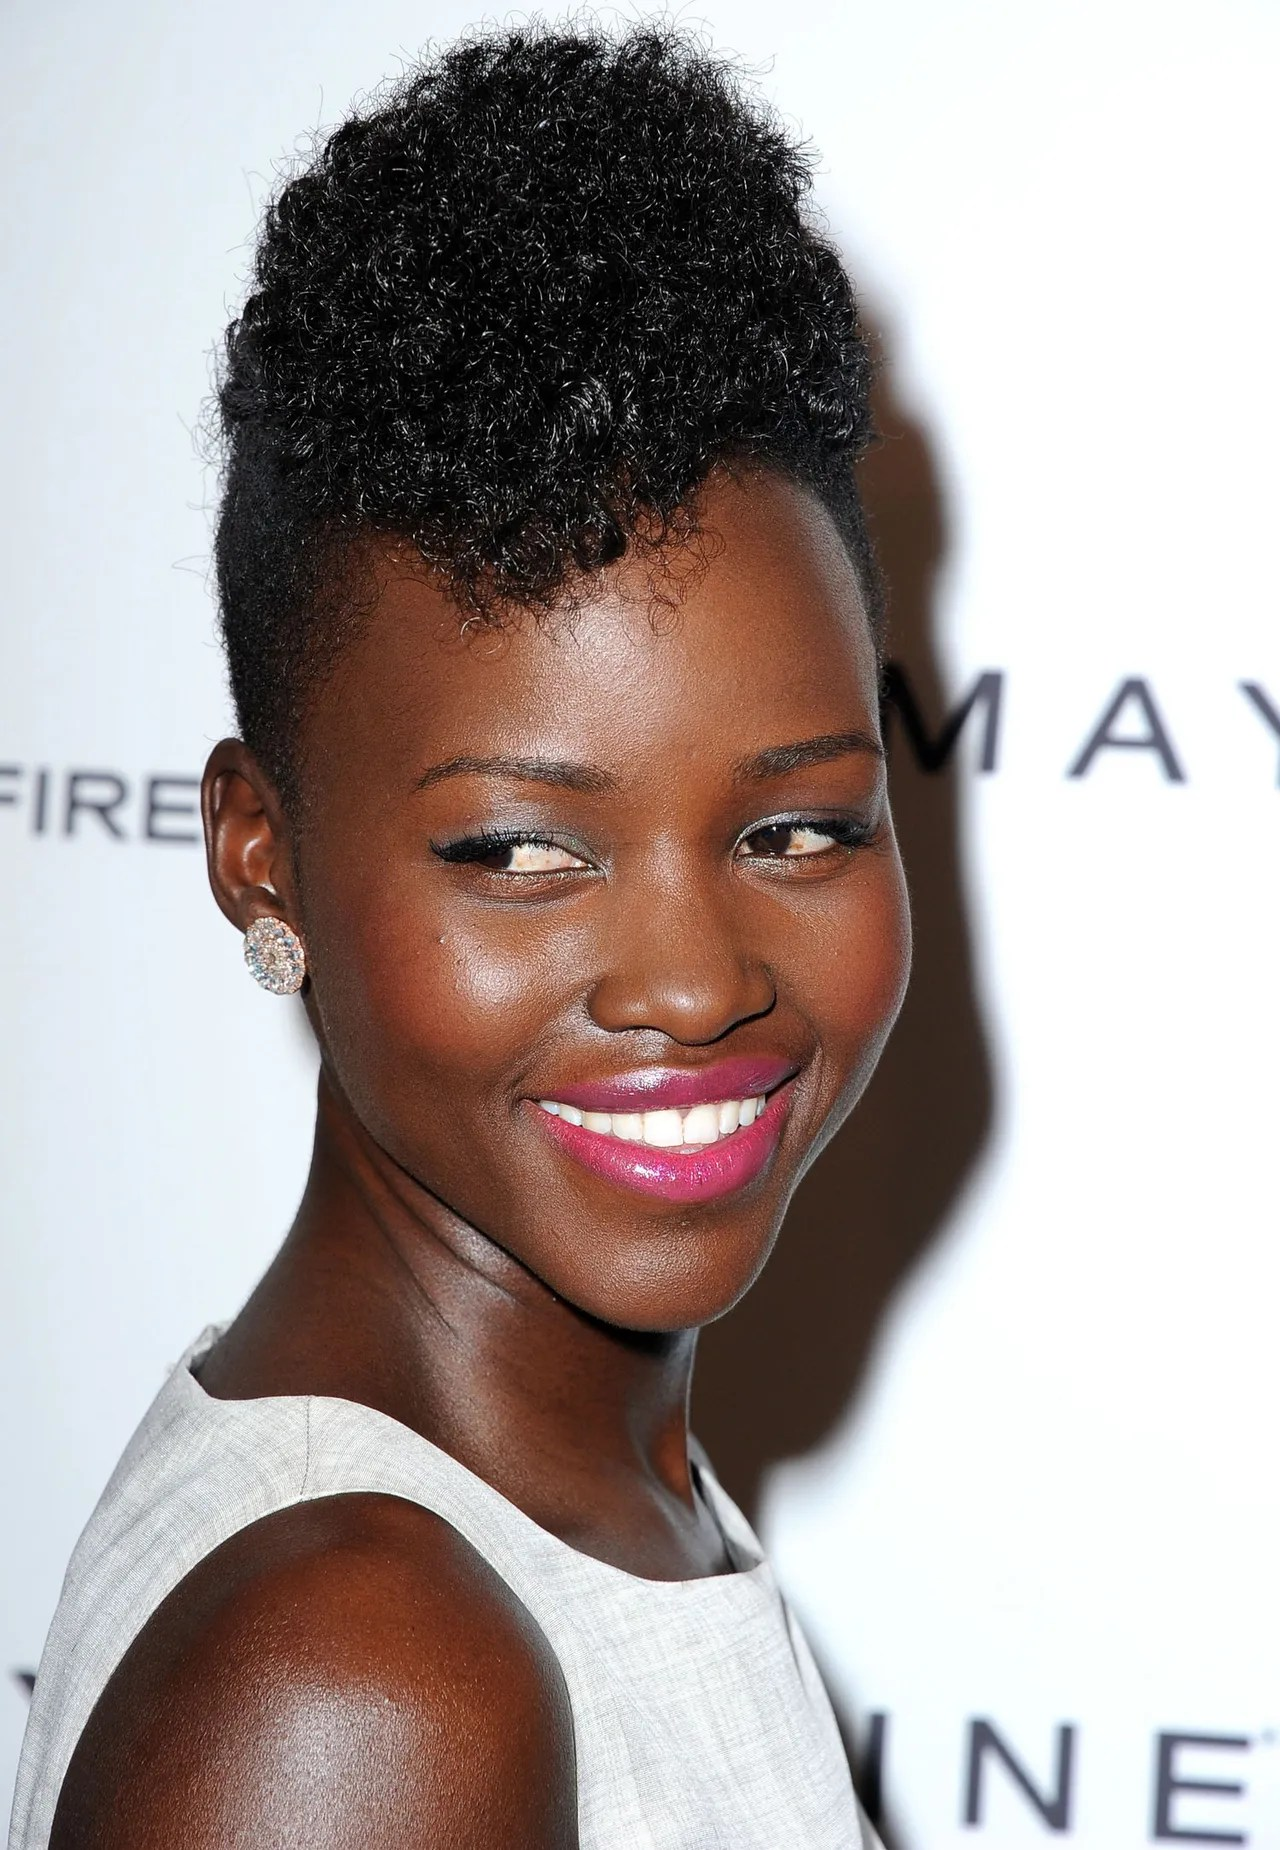 Lupita Nyong o Styles Her Hair Into a Curly Pompadour